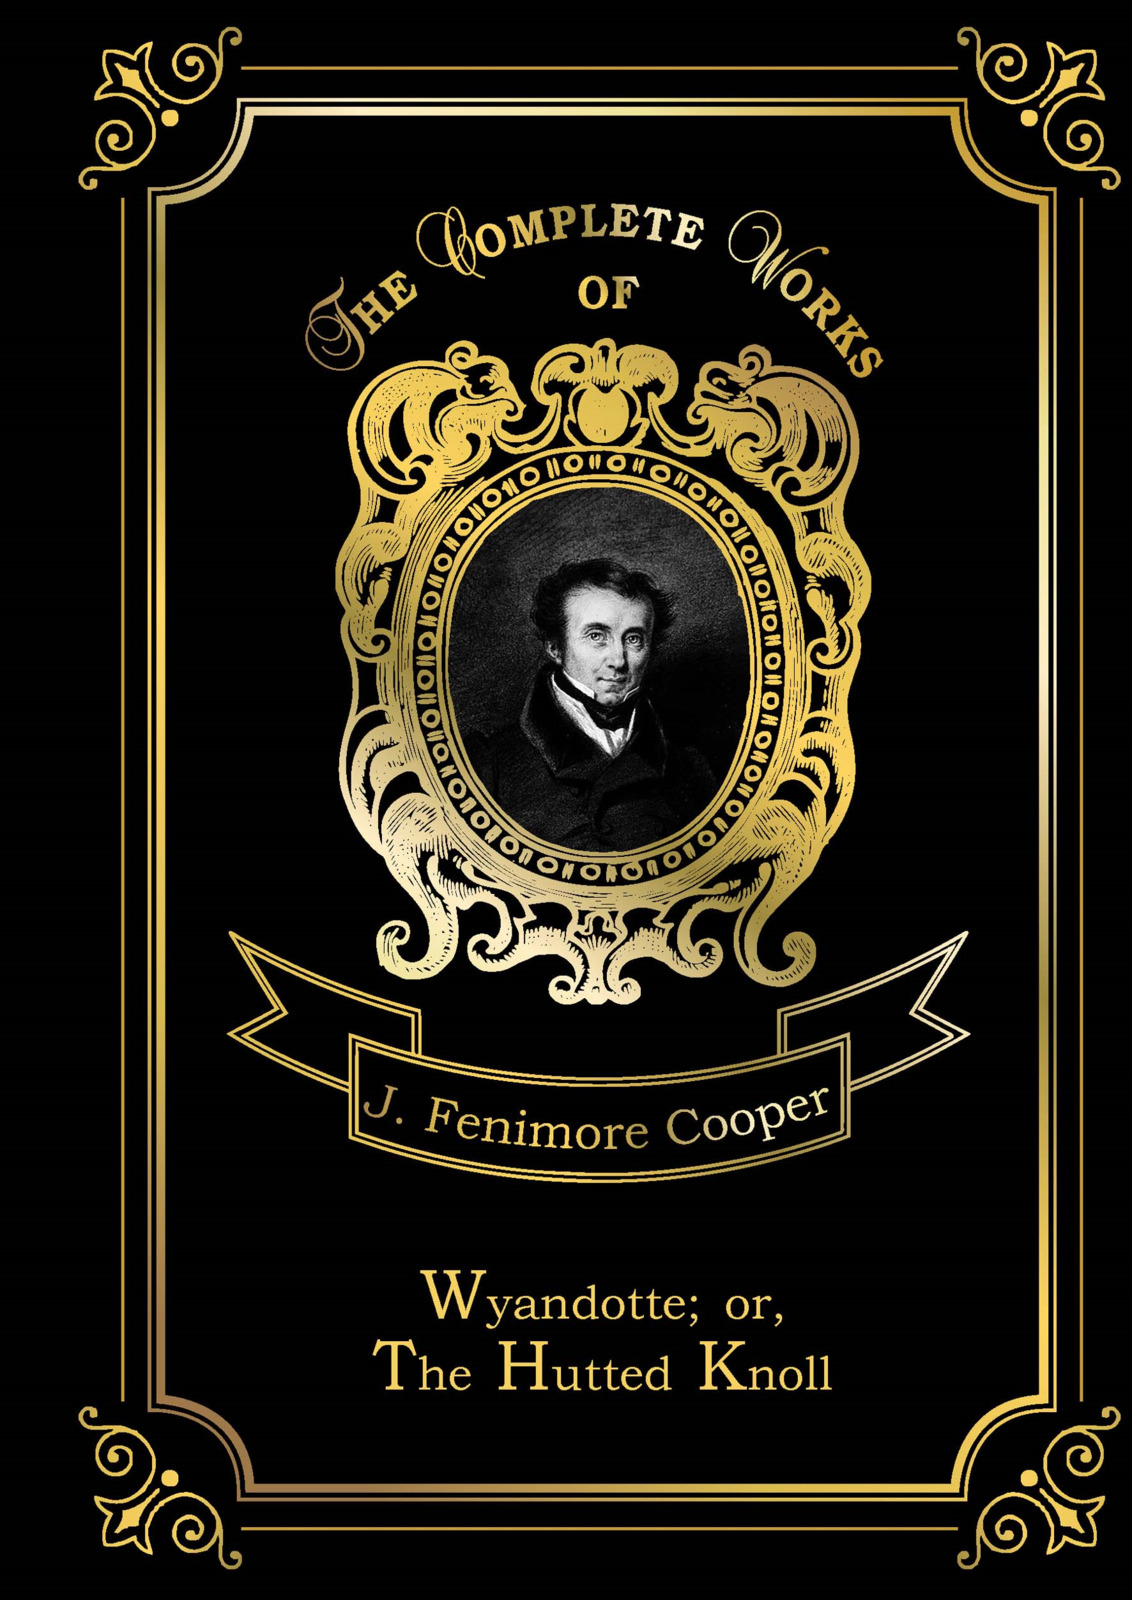 J. F. Cooper Wyandotte; or, The Hutted Knoll